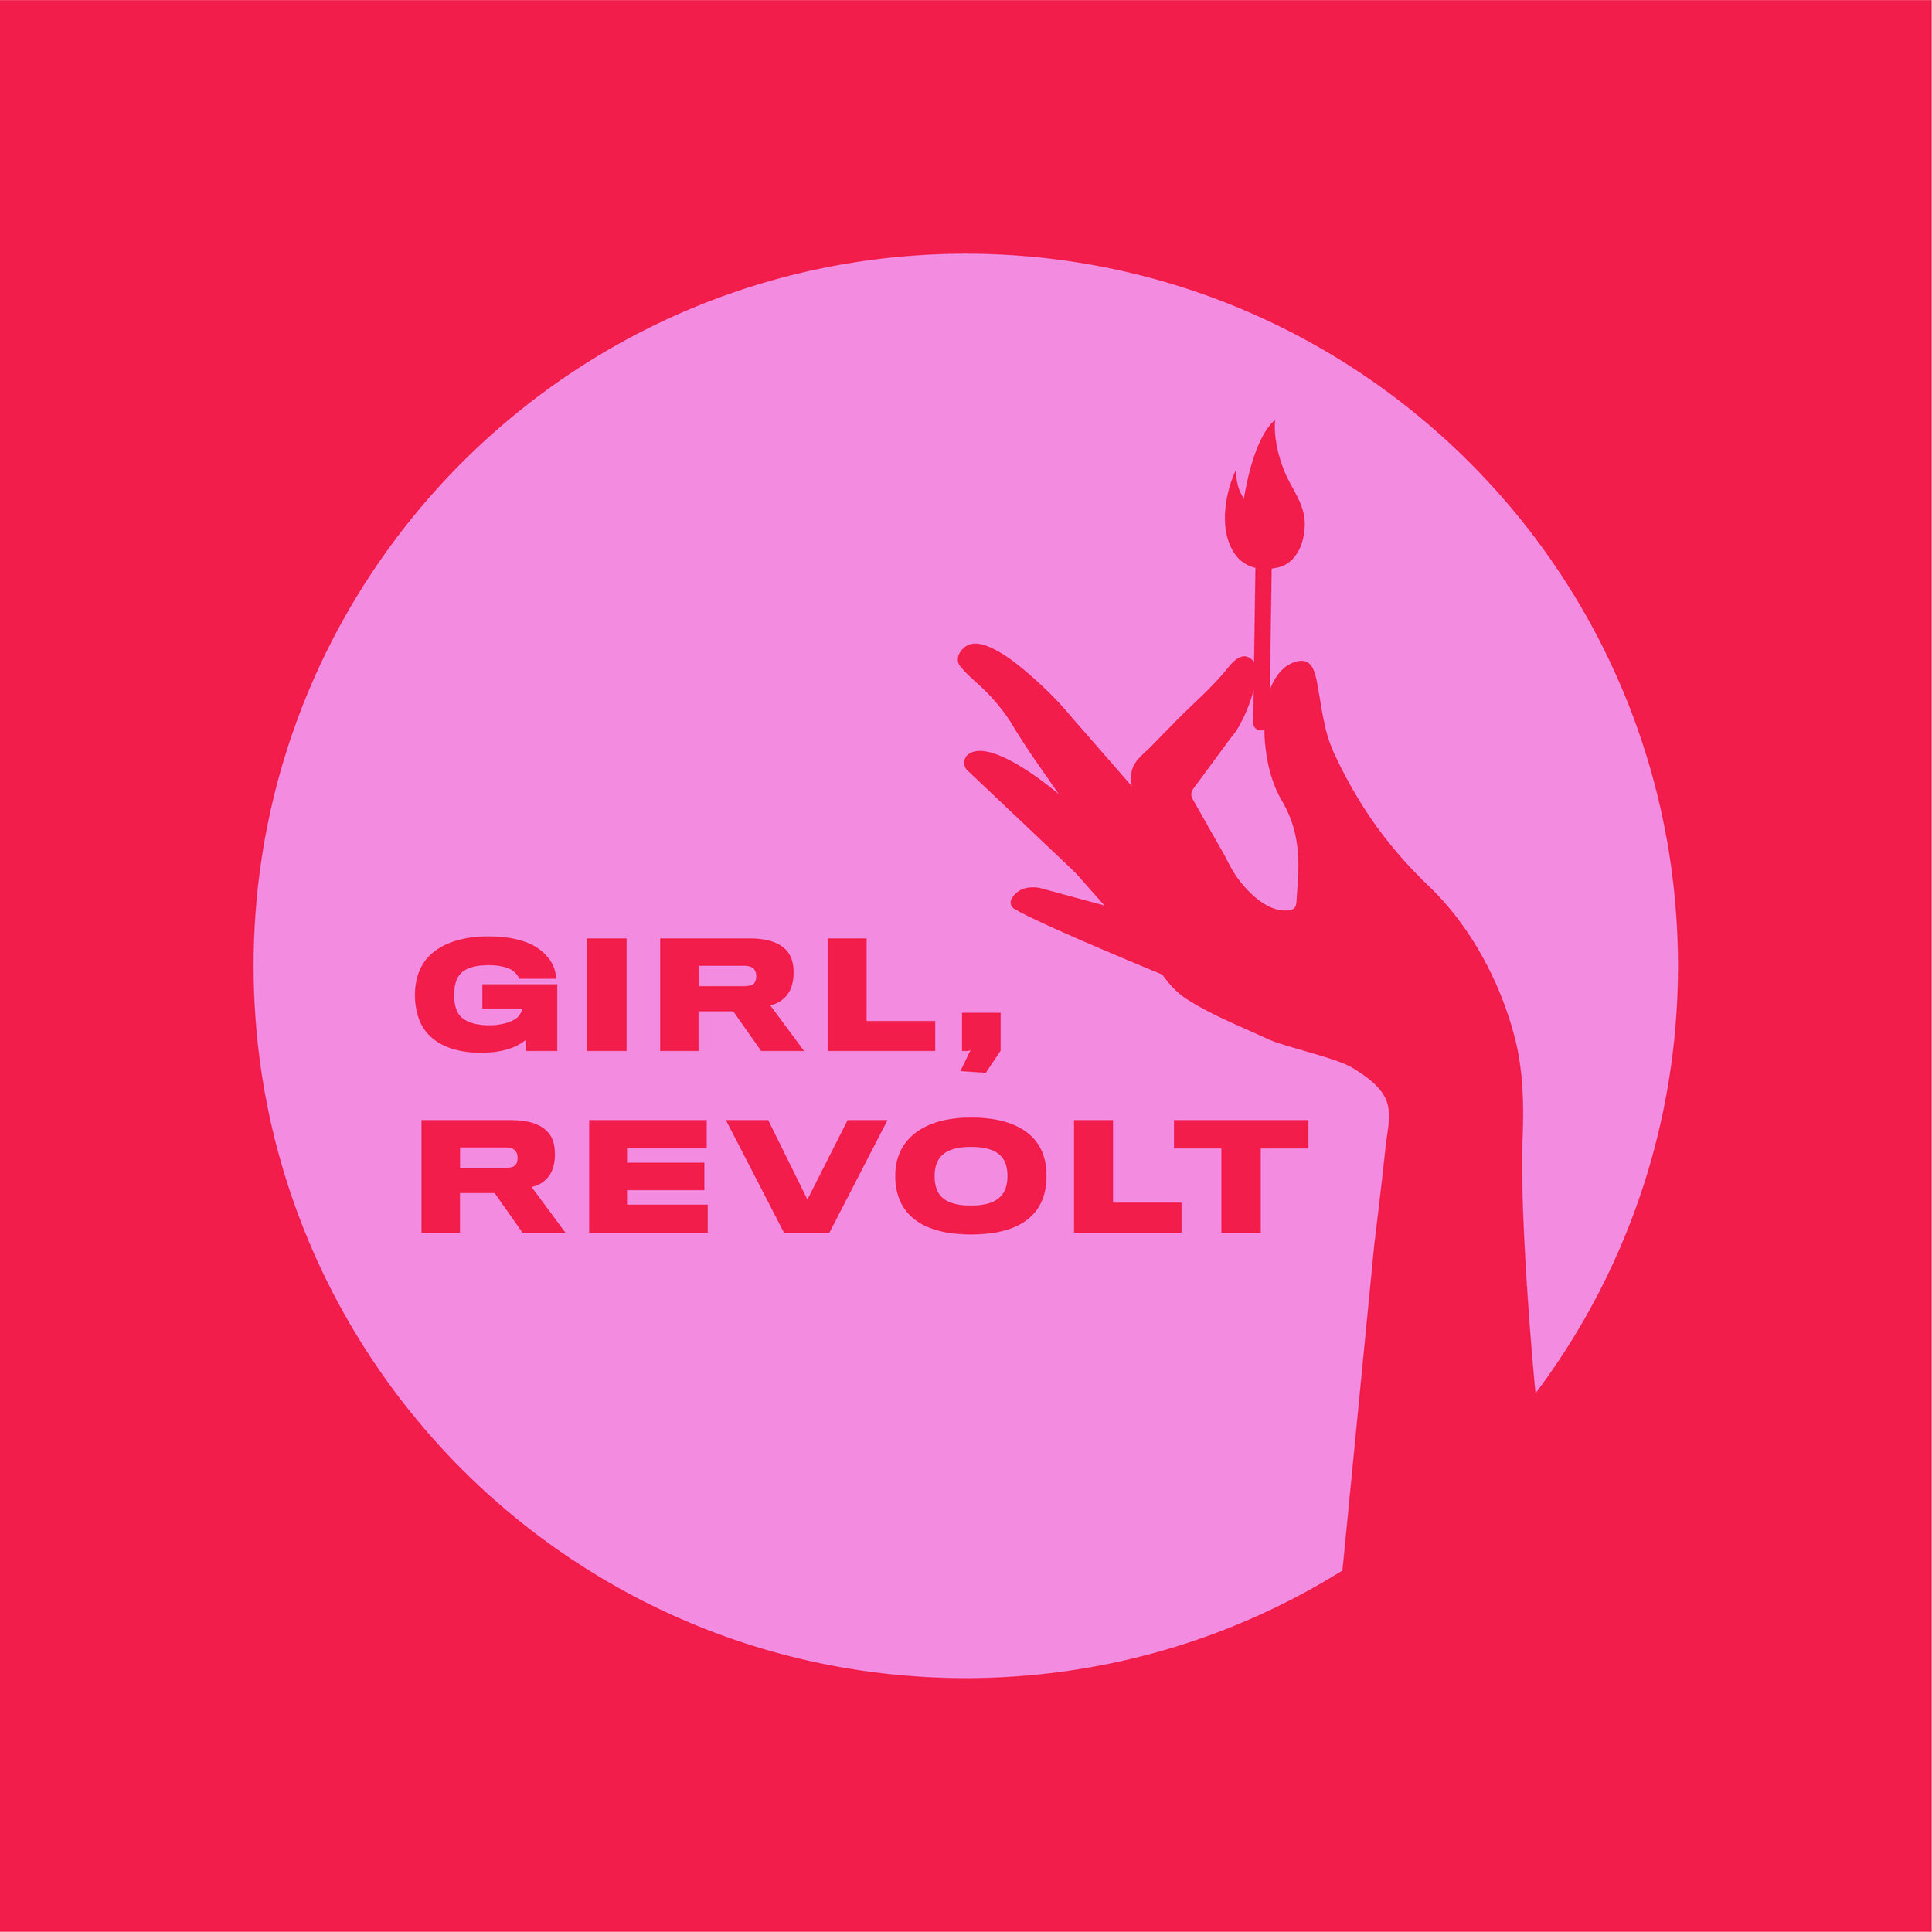 - Girl, REvolt is a Seasonal Empowerment Event Series centered on connection and engagement. LaForce has created Girl, REvolt! as a labor of love + a gift to those of like mind. The mission? To remind all those who seek a lifestyle of intention, inner peace + high vibes that YOU are your own solution. Each event focuses on one element of returning us to our most authentic selves.LaForce is working to create intimate and engaging events highlighting these ideas. Interested in collaborating? Email LaForce at SkewedOrbitProductions@gmail.com!Our 2019/2020 Los Angeles themes are; Fall 2019, REroot. Winter 2020, REflect. Spring 2020, REbuild. Summer 2020, REjoin. CLICK HERE TO GET YOUR TICKETS FOR OUR NOVEMBER 9TH EVENT!